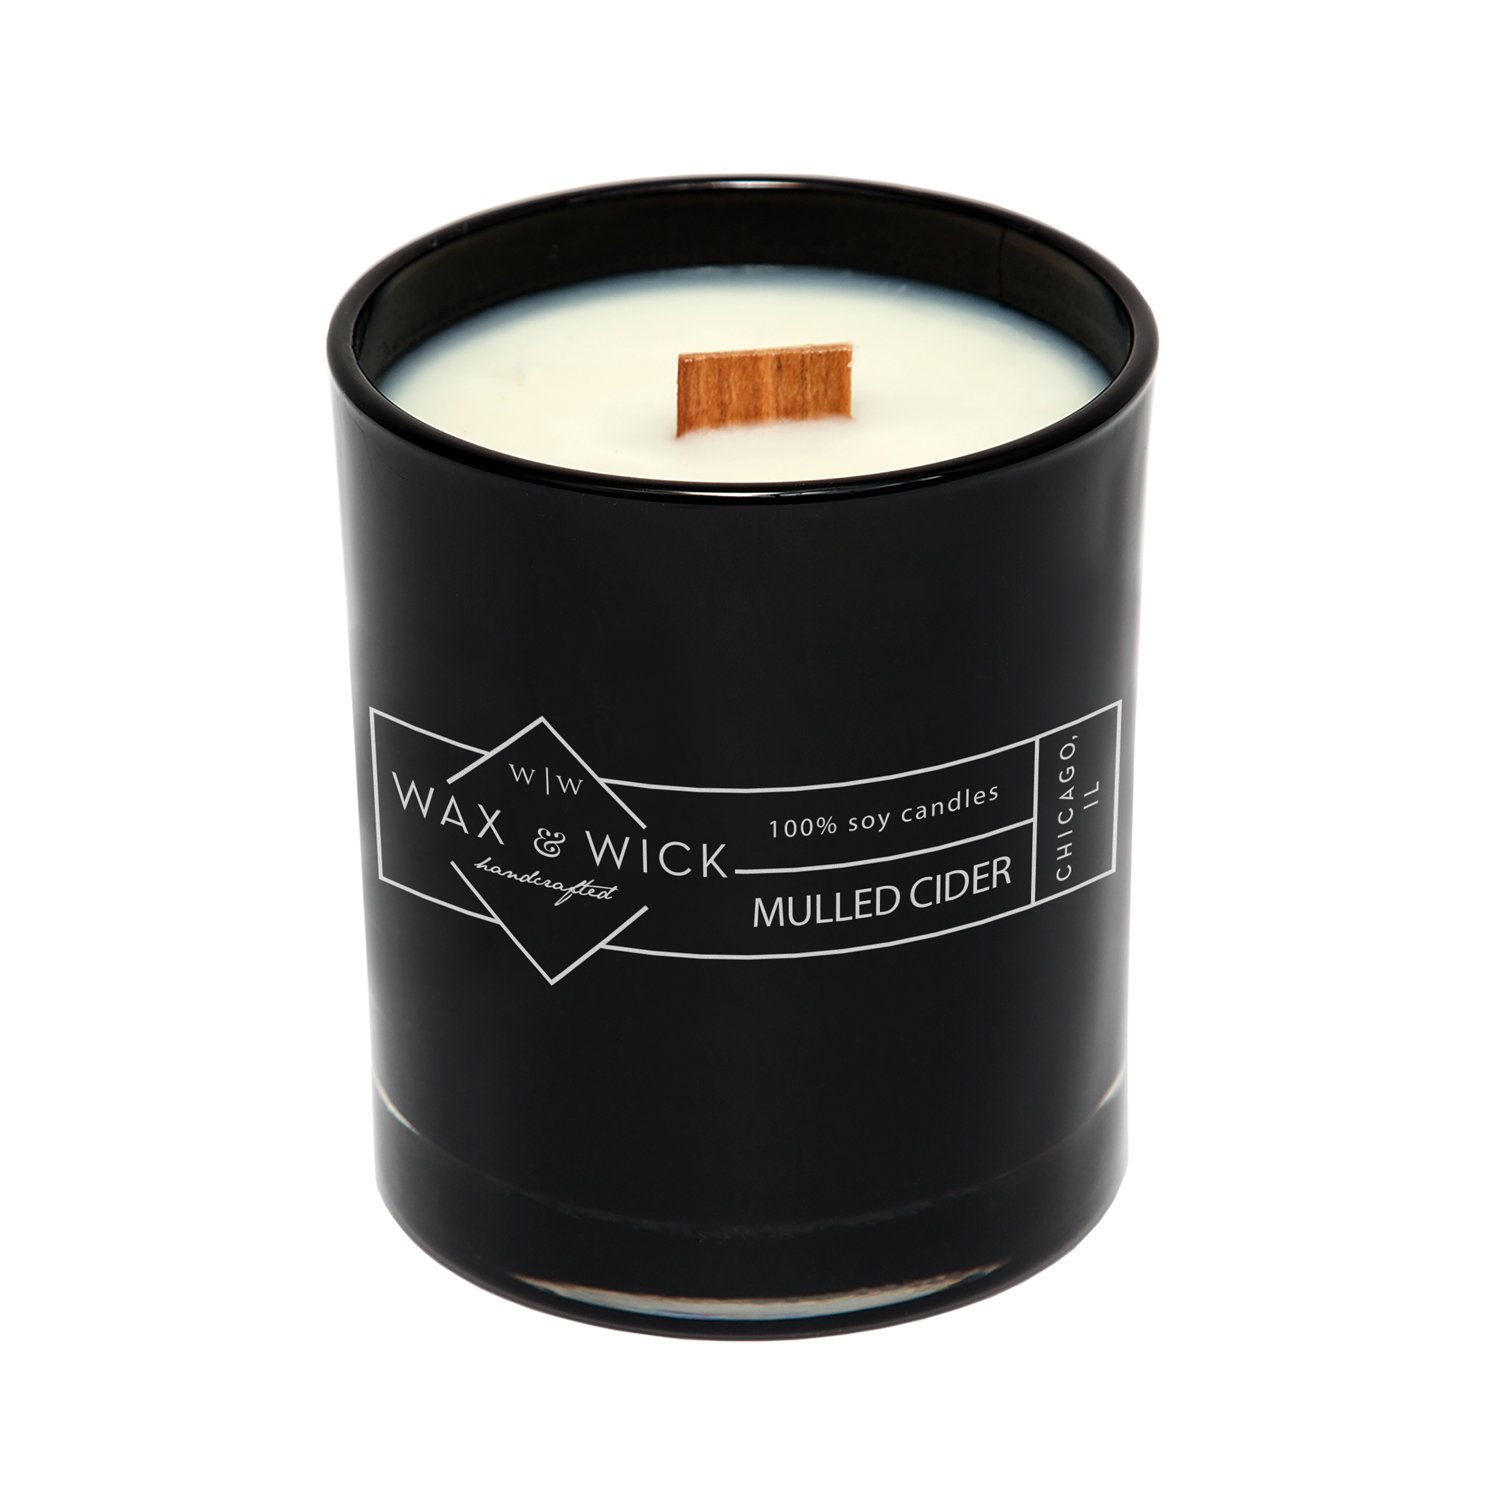 Scented Soy Candle: 100% Pure Soy Wax with Wood Double Wick | Burns Cleanly up to 60 Hrs | Mulled Cider Scent - Notes of Apple, Nutmeg, Vanilla, Caramel. | 12 oz Black Jar by Wax and Wick by Wax & Wick (Image #2)